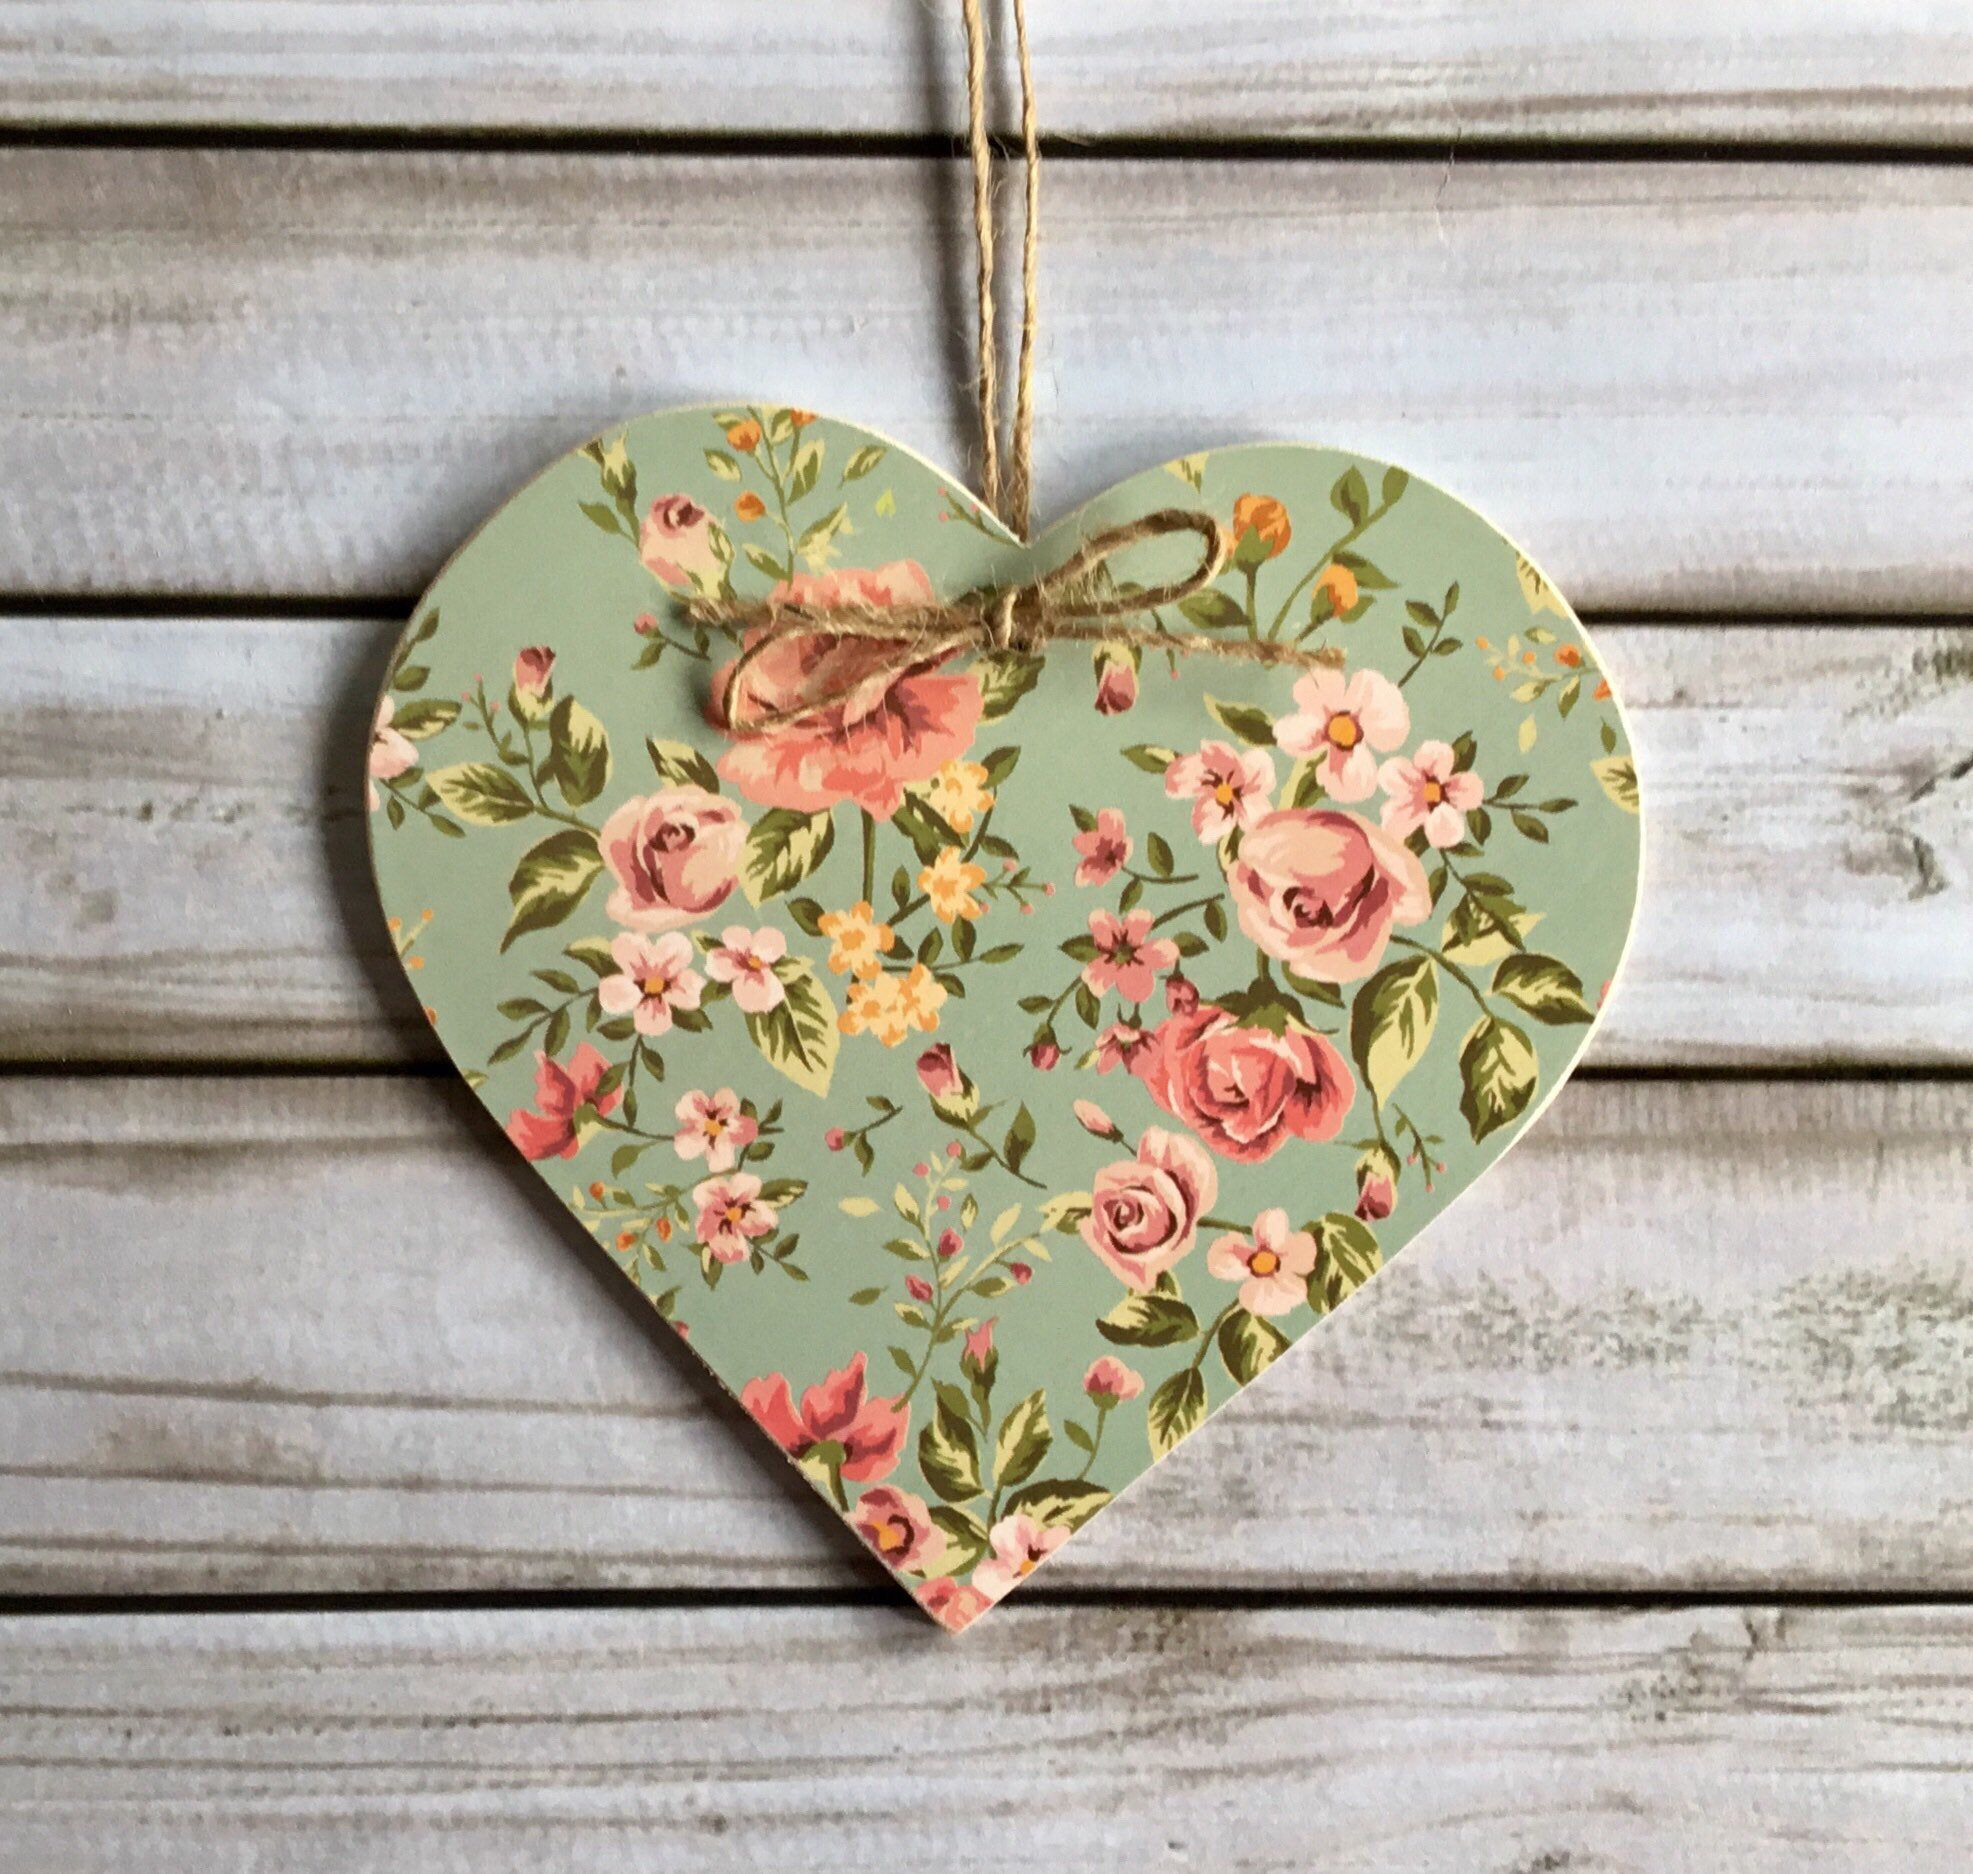 Pink Roses Green Floral Wooden Hanging Heart Home Decor Wooden Hearts Crafts Heart Diy Crafts Valentine Crafts